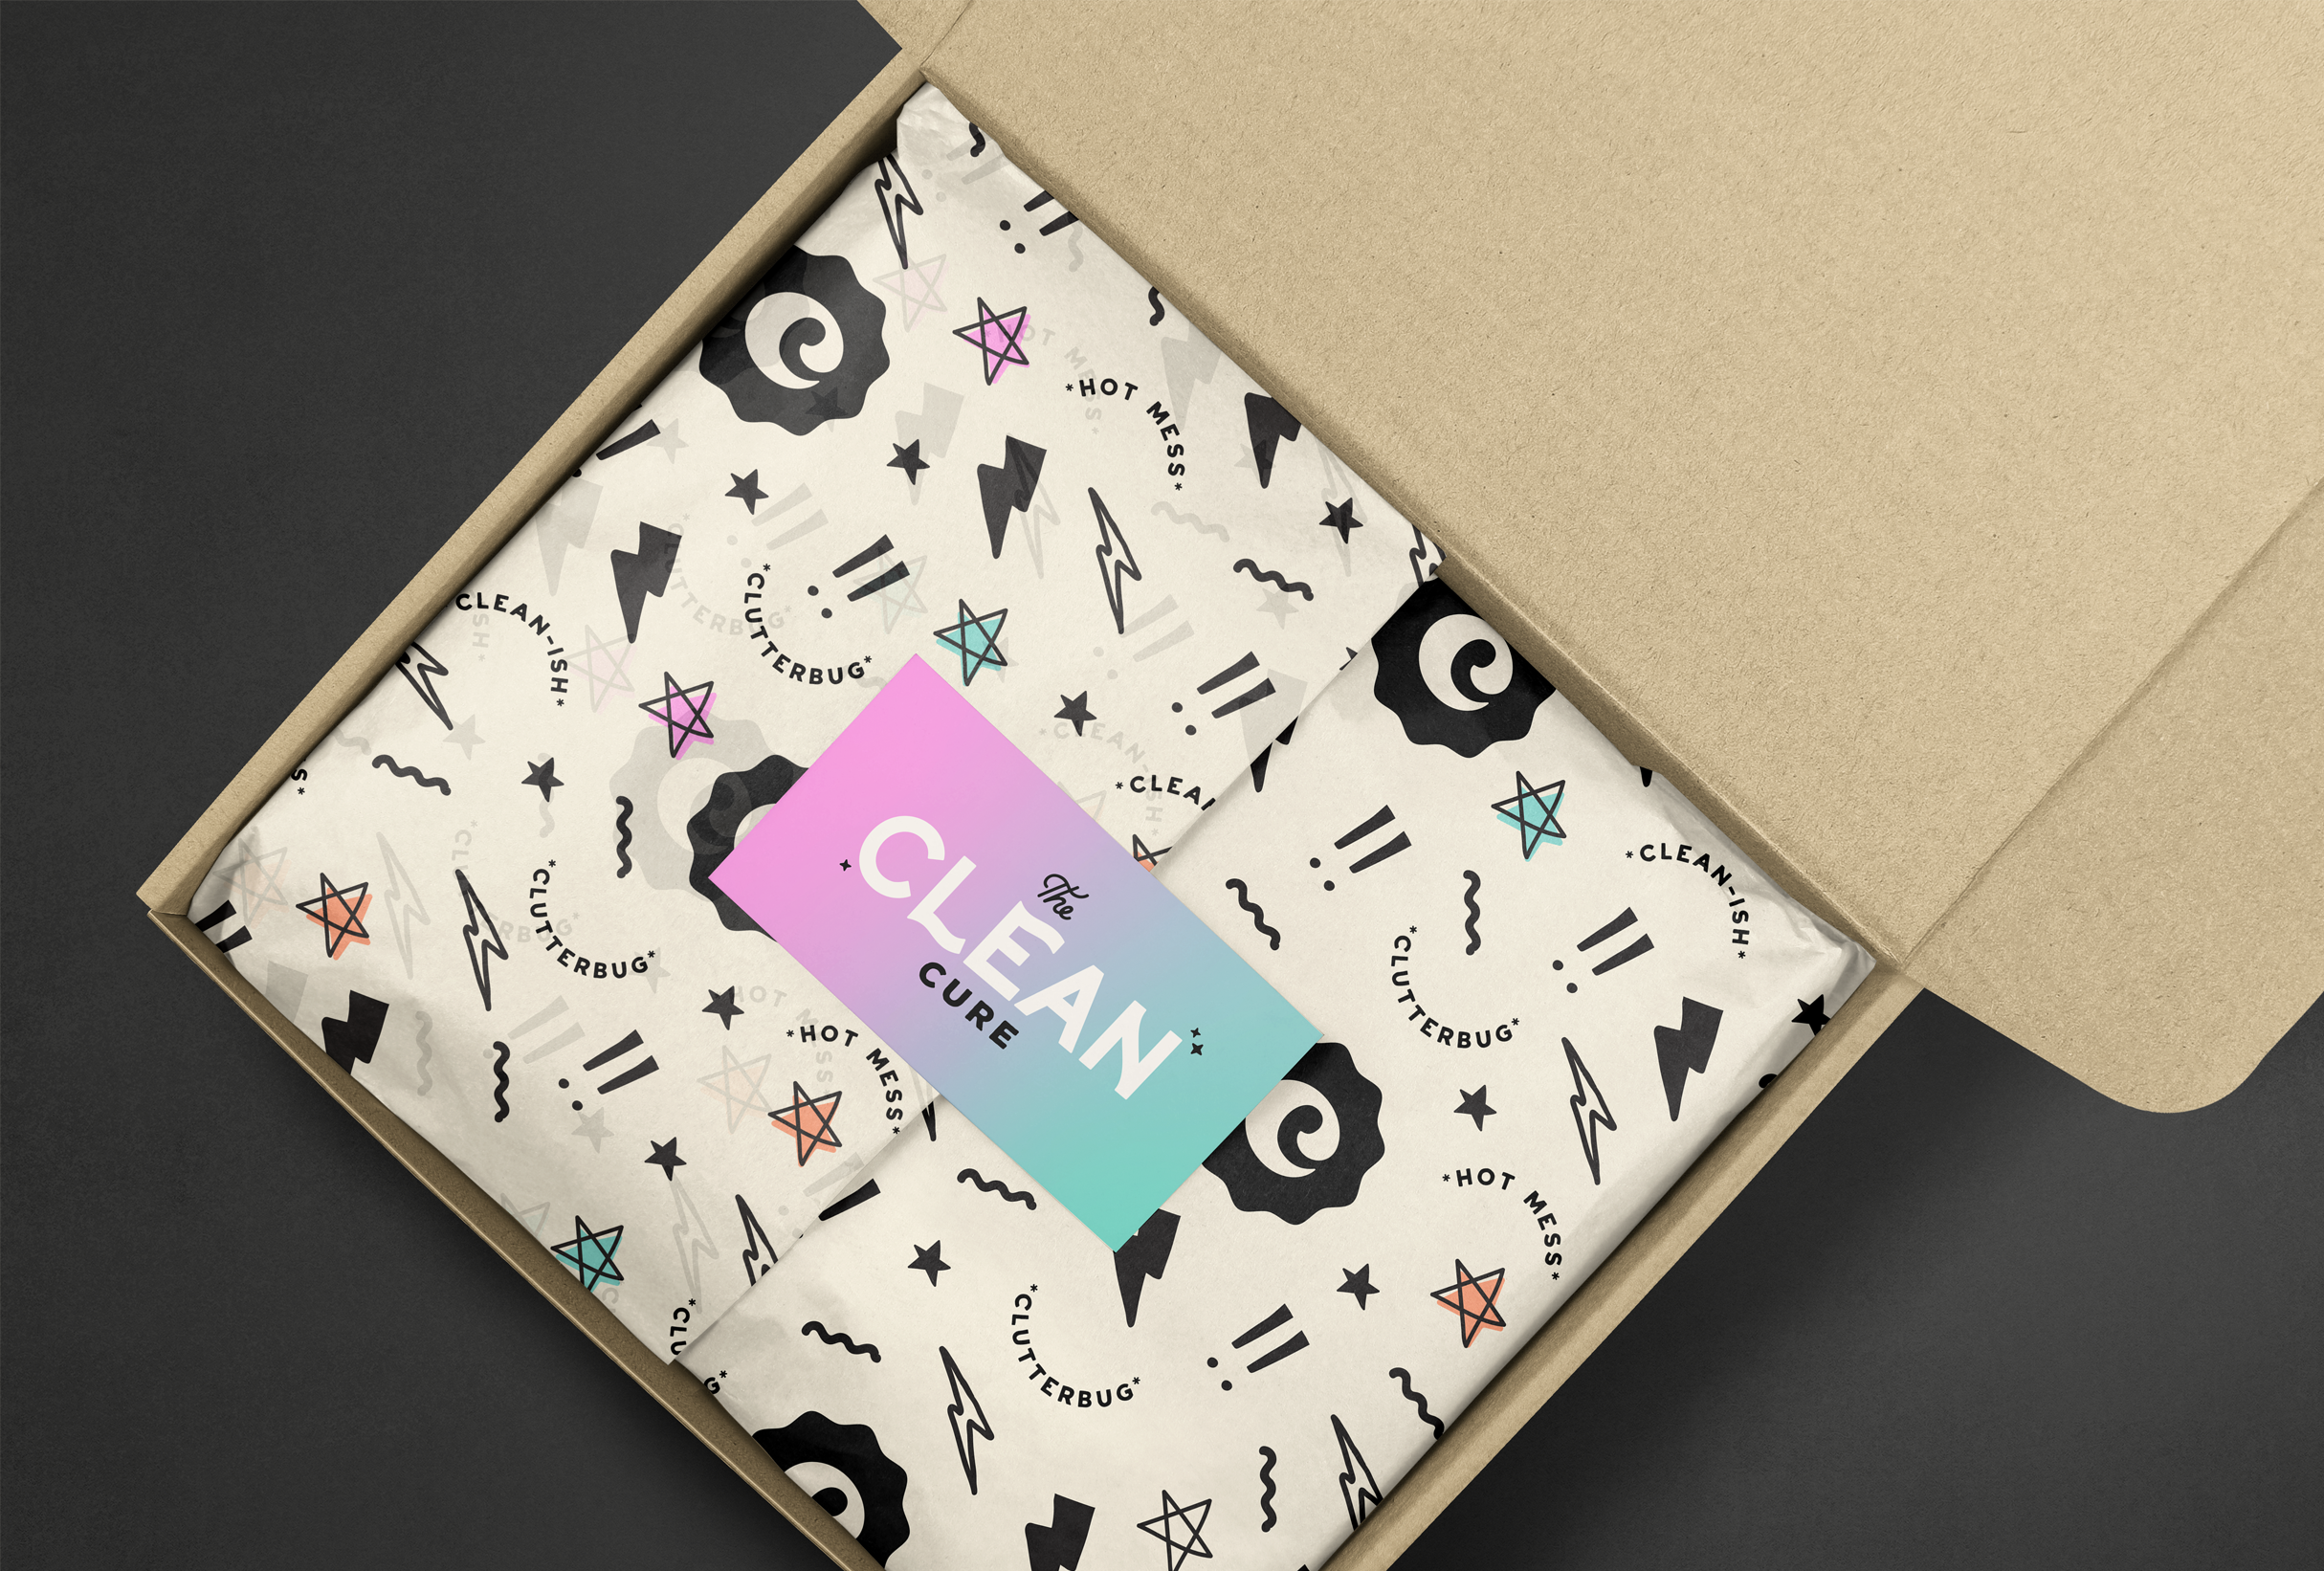 Packaging design for The Clean Cure, helping you get organised by delving to the root of the problem - designed by Wiltshire-based graphic designer, Kaye Huett